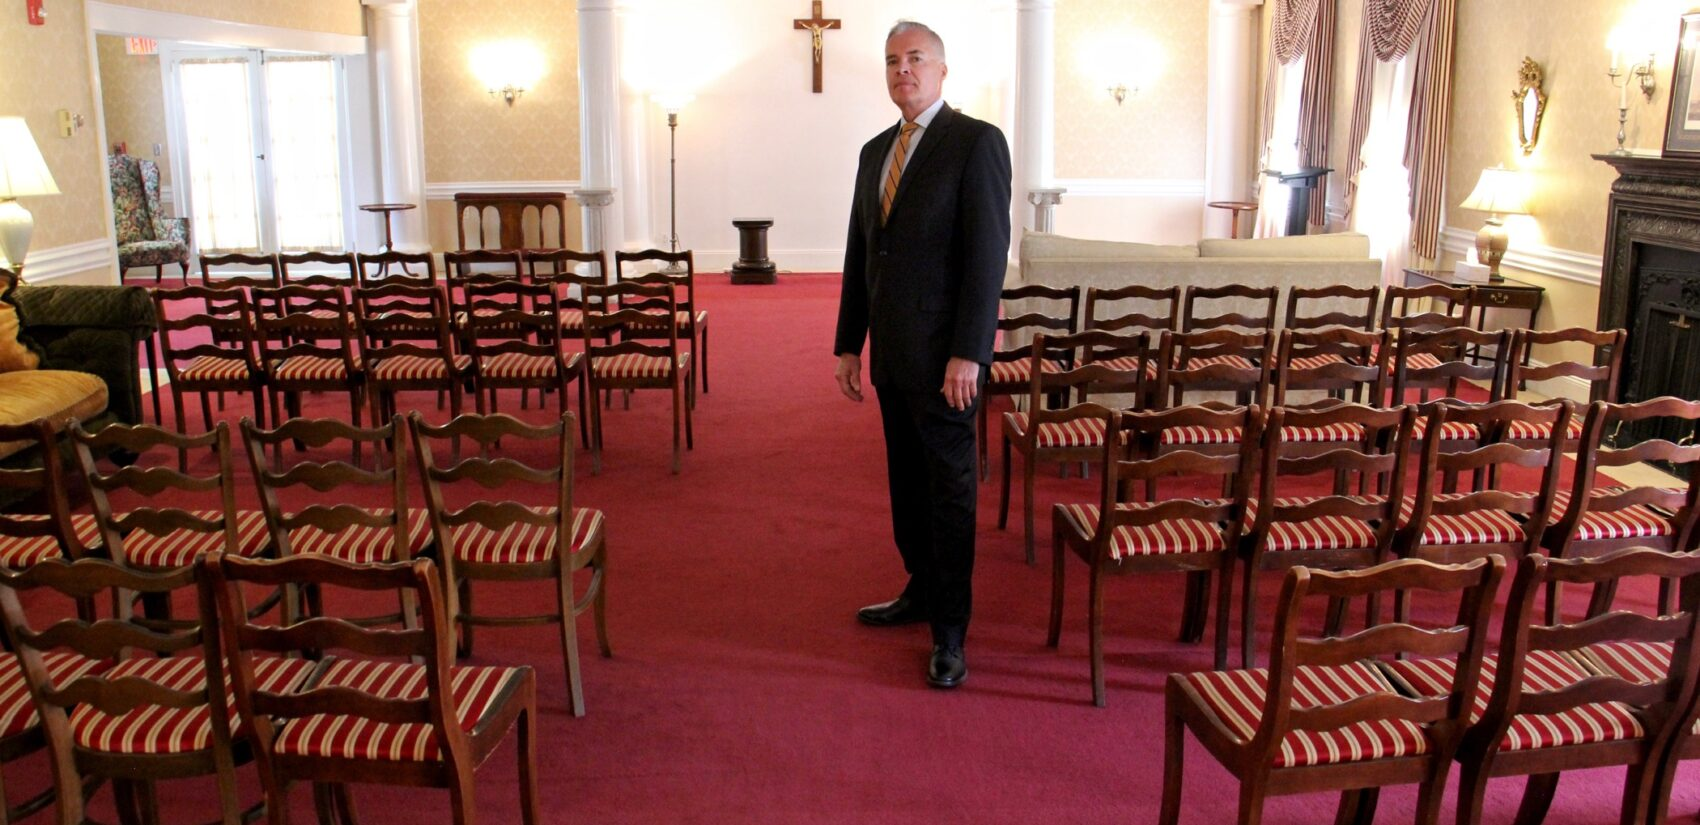 Funeral director Kurt Larsen stands in the empty chapel at Volk Leber Funeral Home in Teaneck, N.J. The chapel hasn't been used since limits on social gatherings went into effect for the region. (Emma Lee/WHYY)